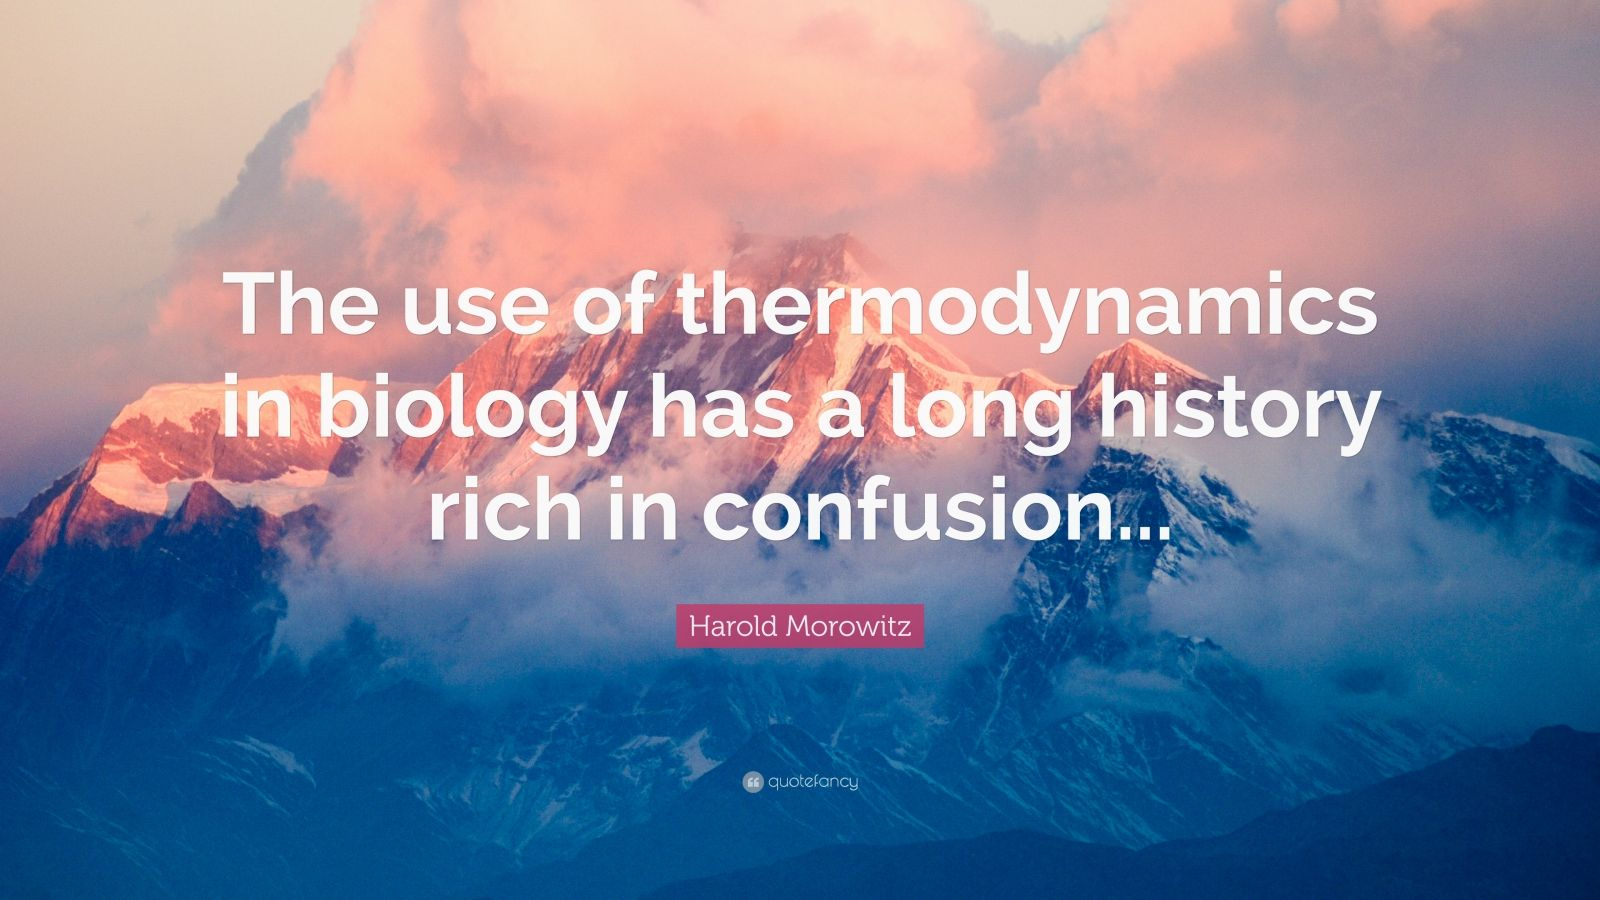 an introduction to the life and history of harold morowitz Introduction-bio-energetics of life processes-prof mainak  week 1 :  introduction to bioenergetics week 2  foundations of bioenergetics by harold  morowitz.